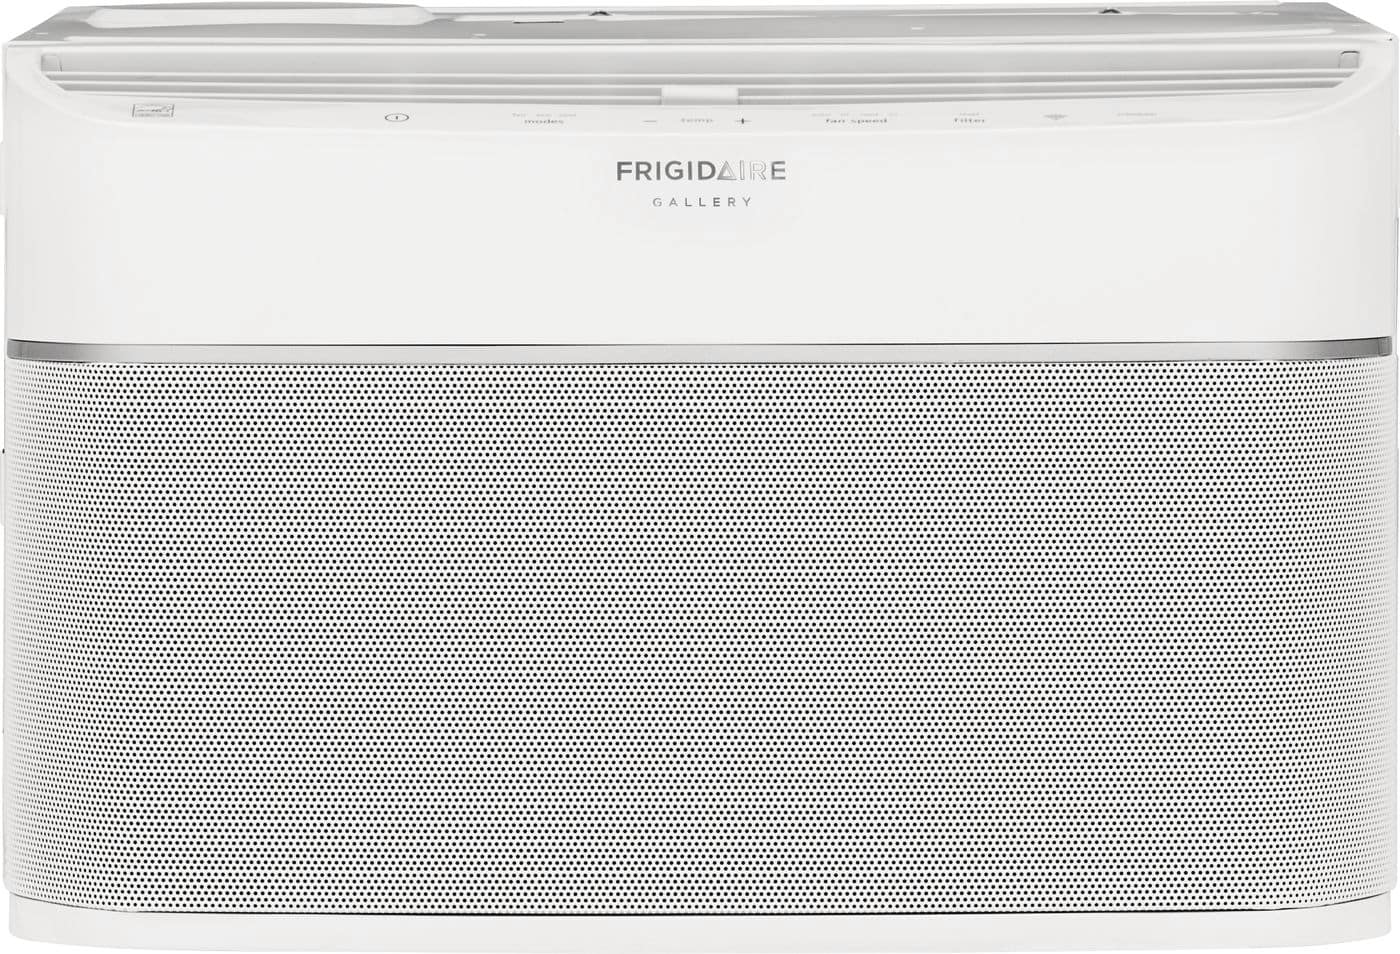 Frigidaire 10,000 BTU Cool Connect™ Smart Room Air Conditioner with Wifi Control